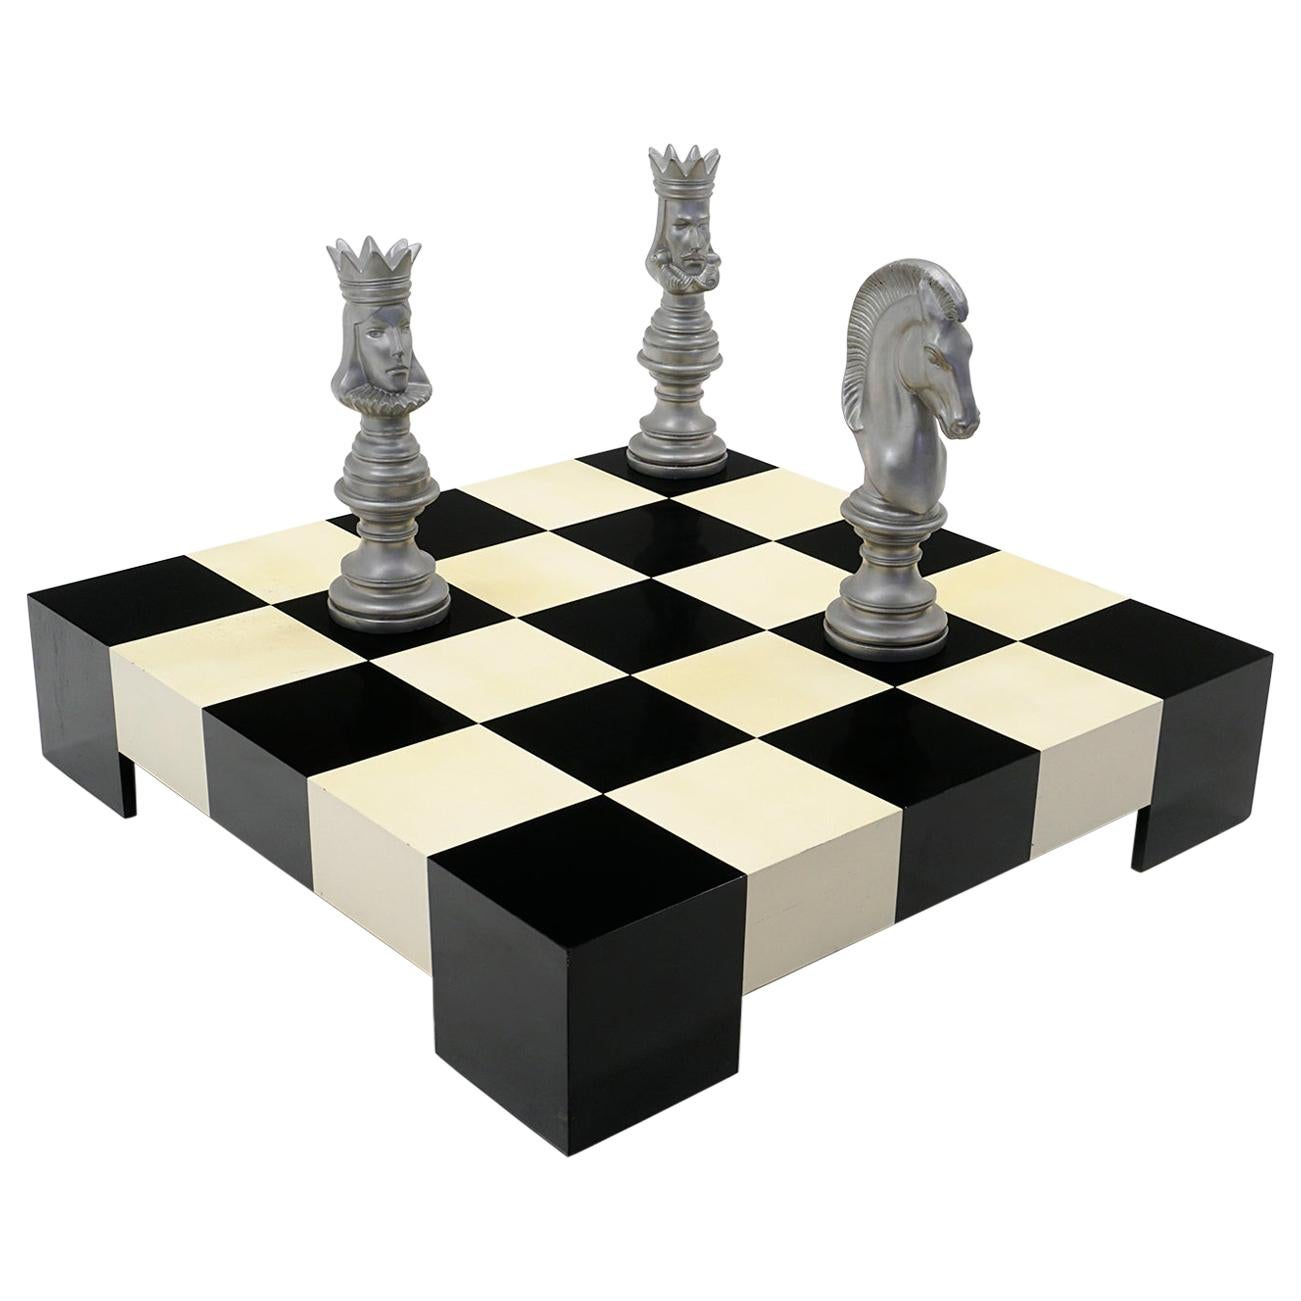 Milo Baughman Black & White Checkerboard Coffee Table with 3 Large Chess Pieces